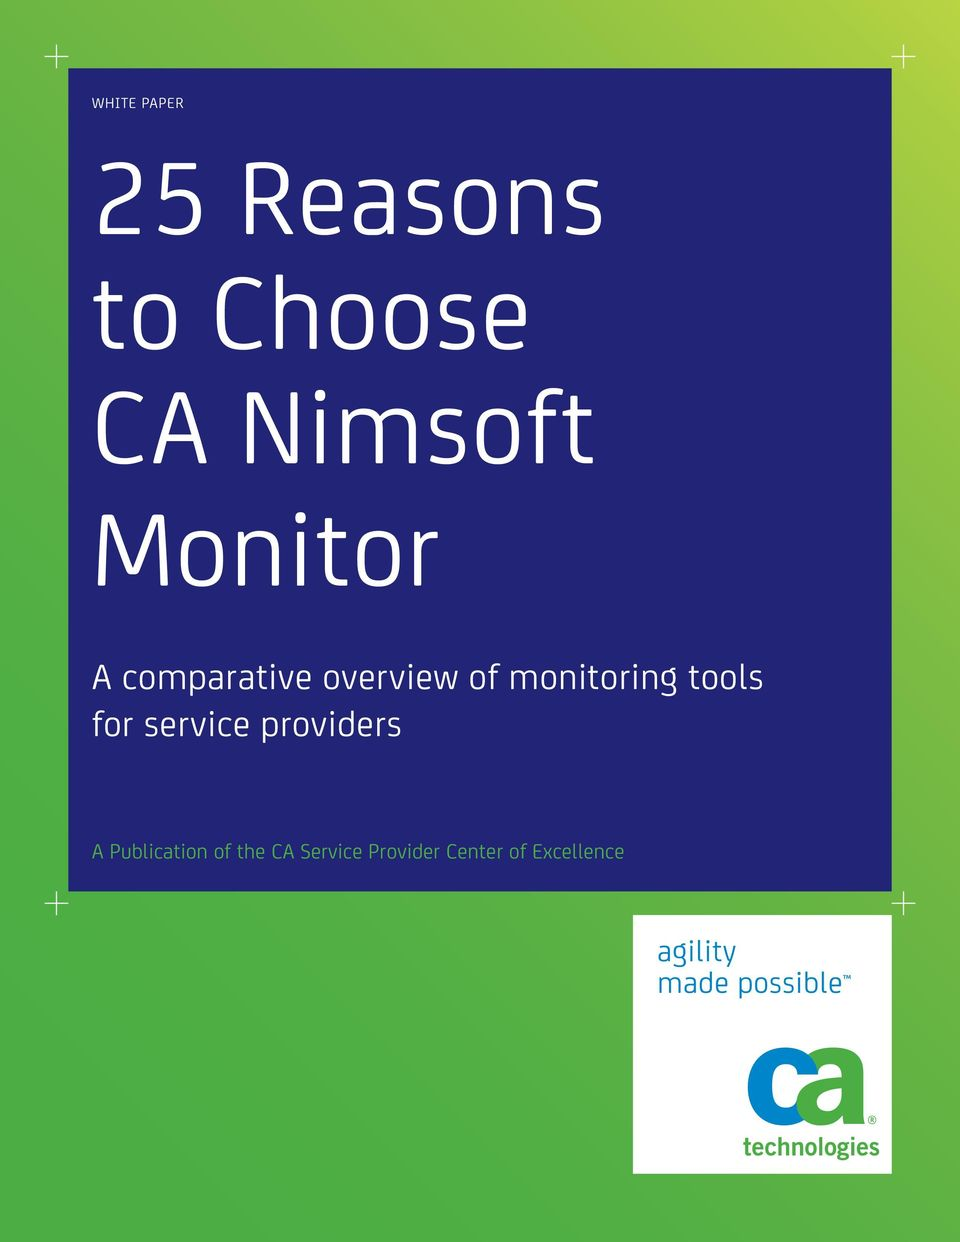 tools for service providers A Publication of the